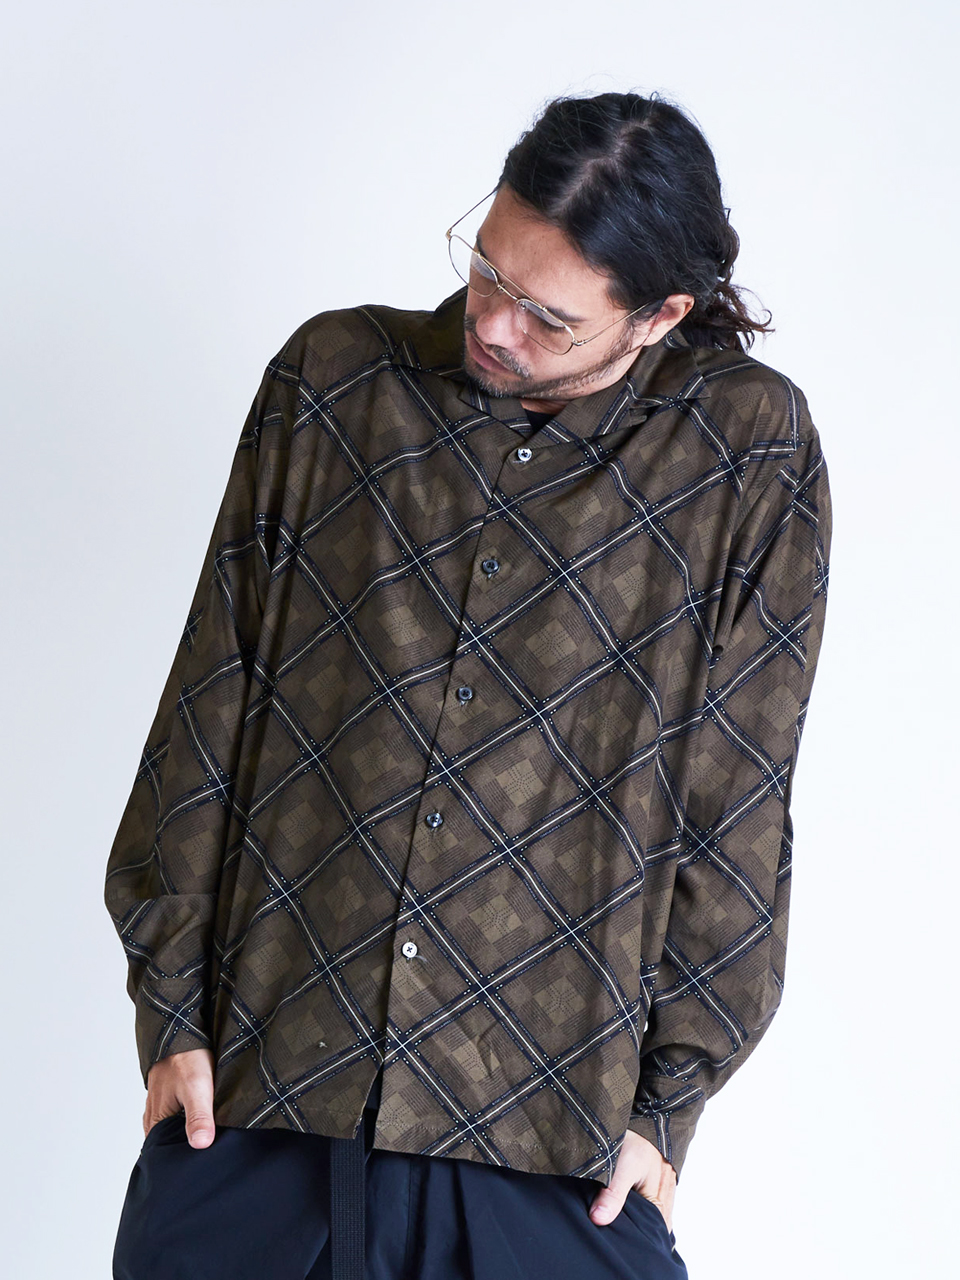 EGO TRIPPING | RHOMBUS PATTERNED SHIRTS